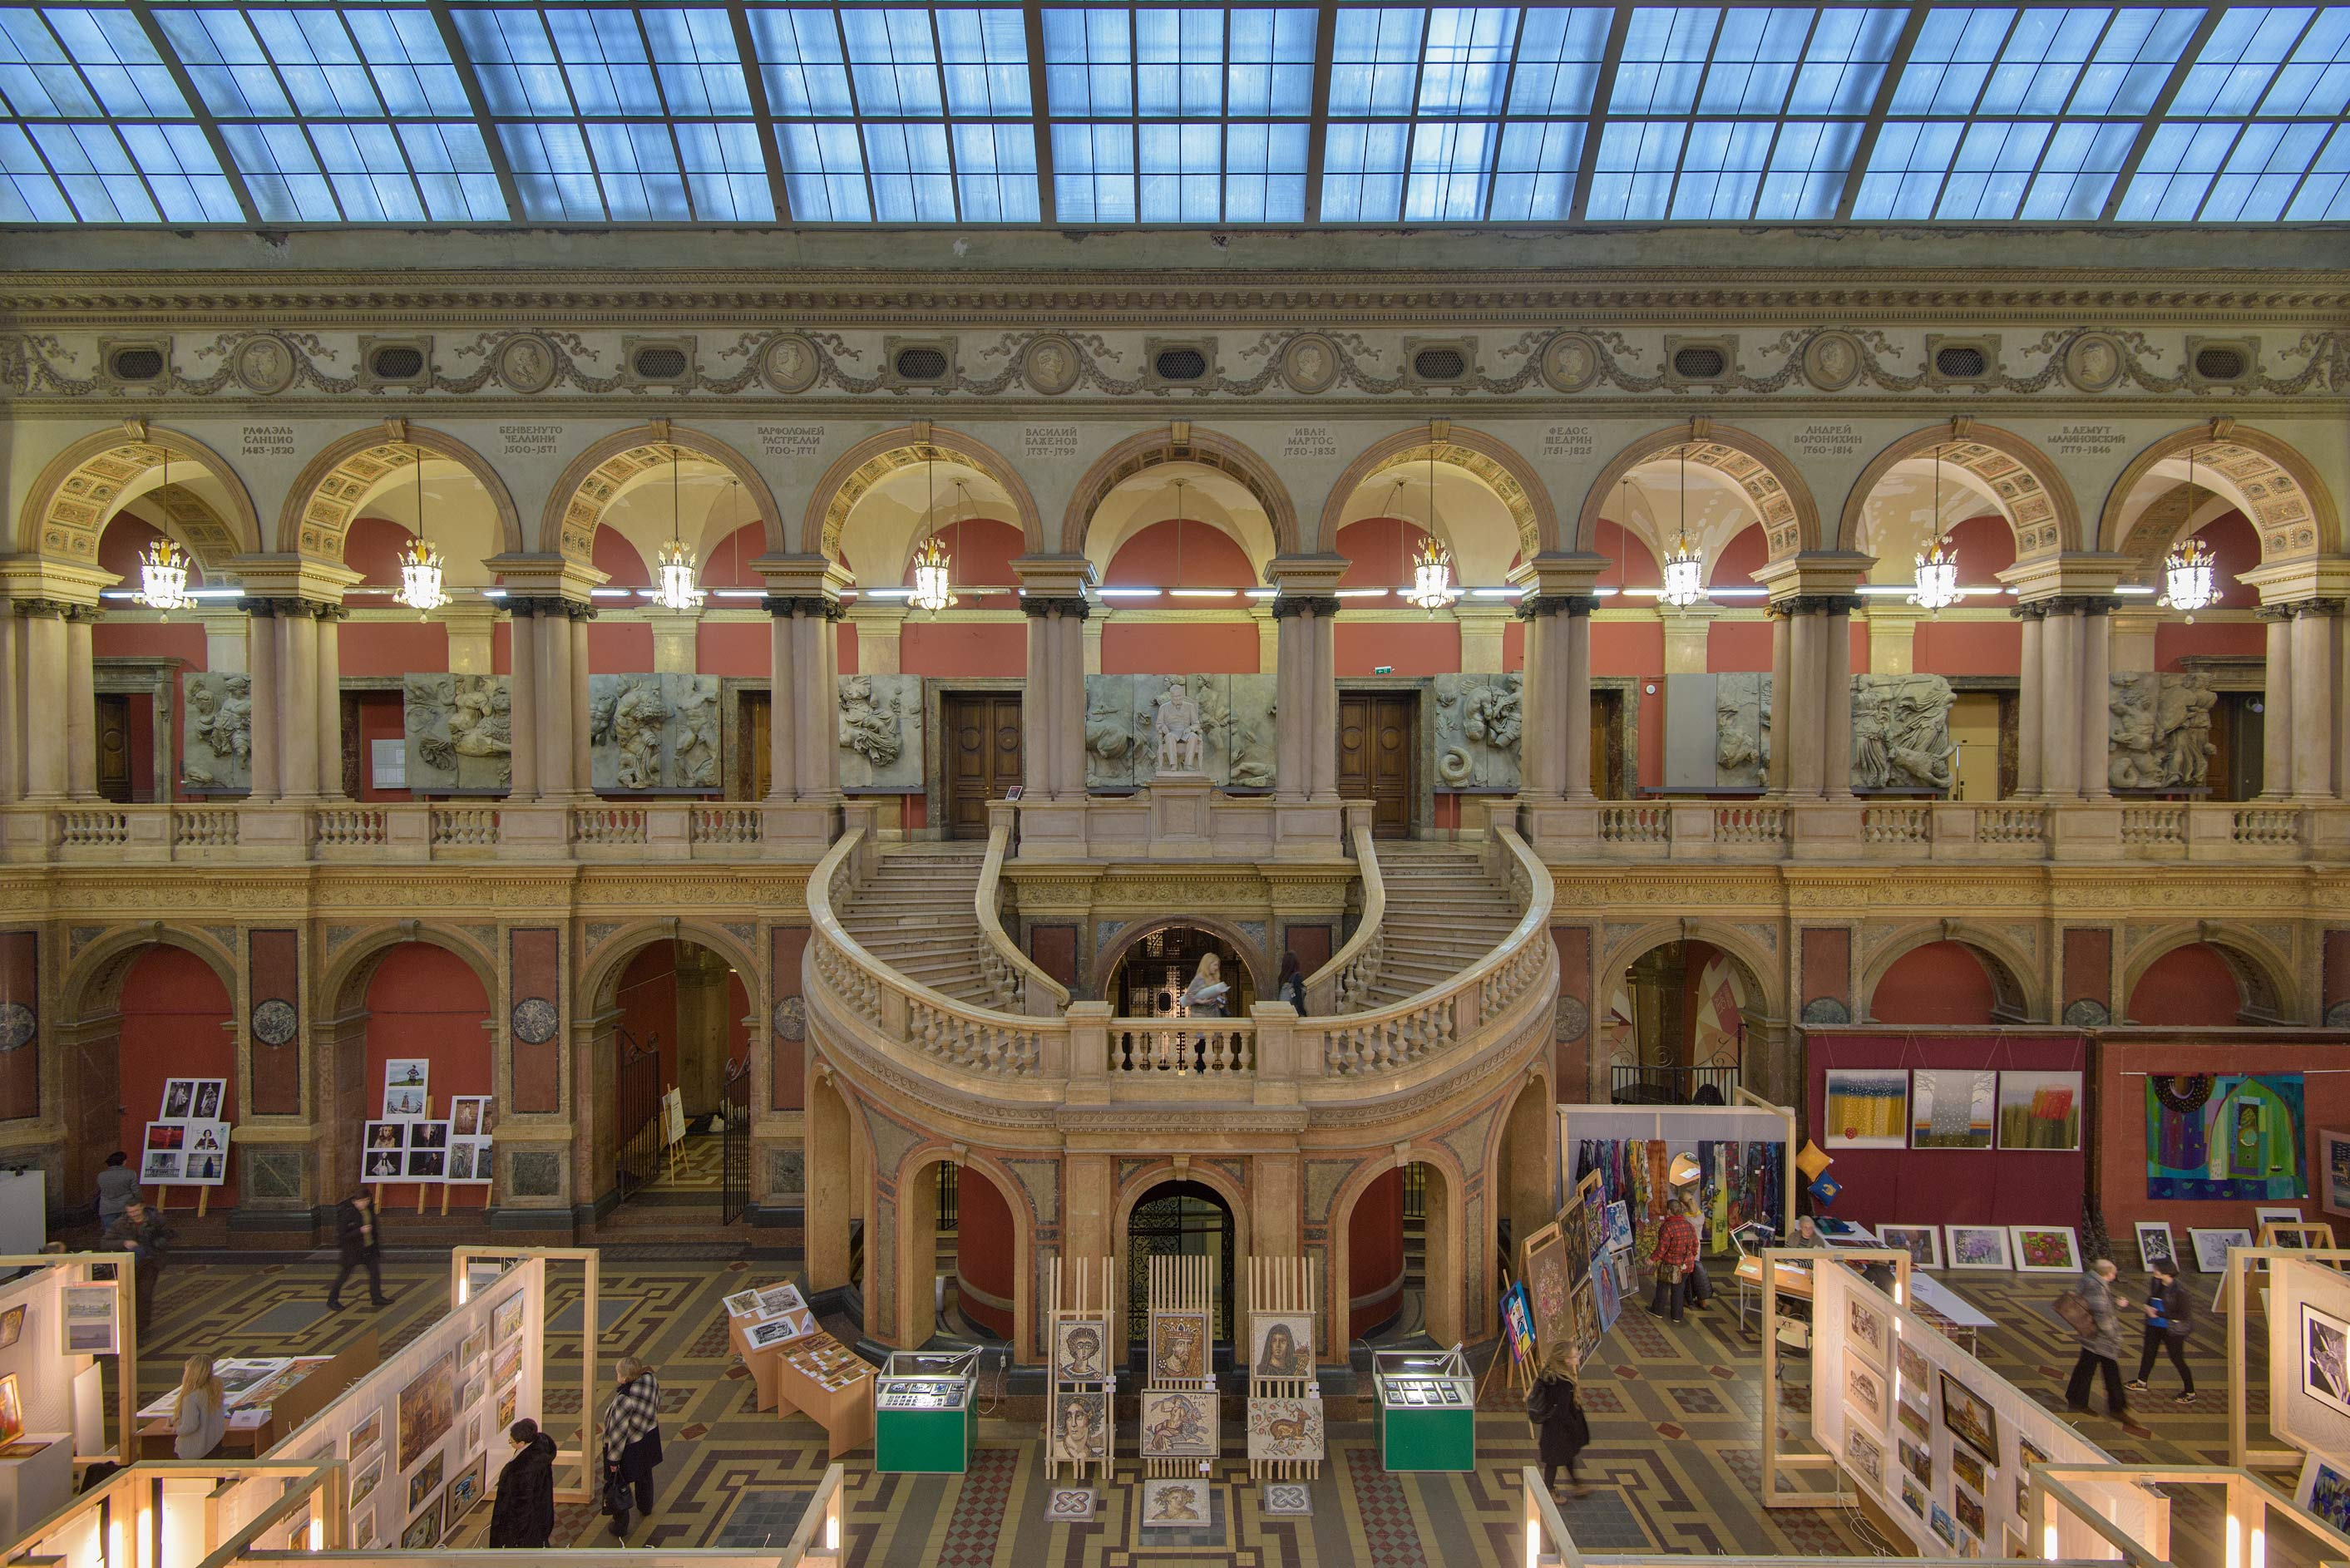 Exhibition Hall in Stieglitz Museum of Applied Arts. St.Petersburg, Russia